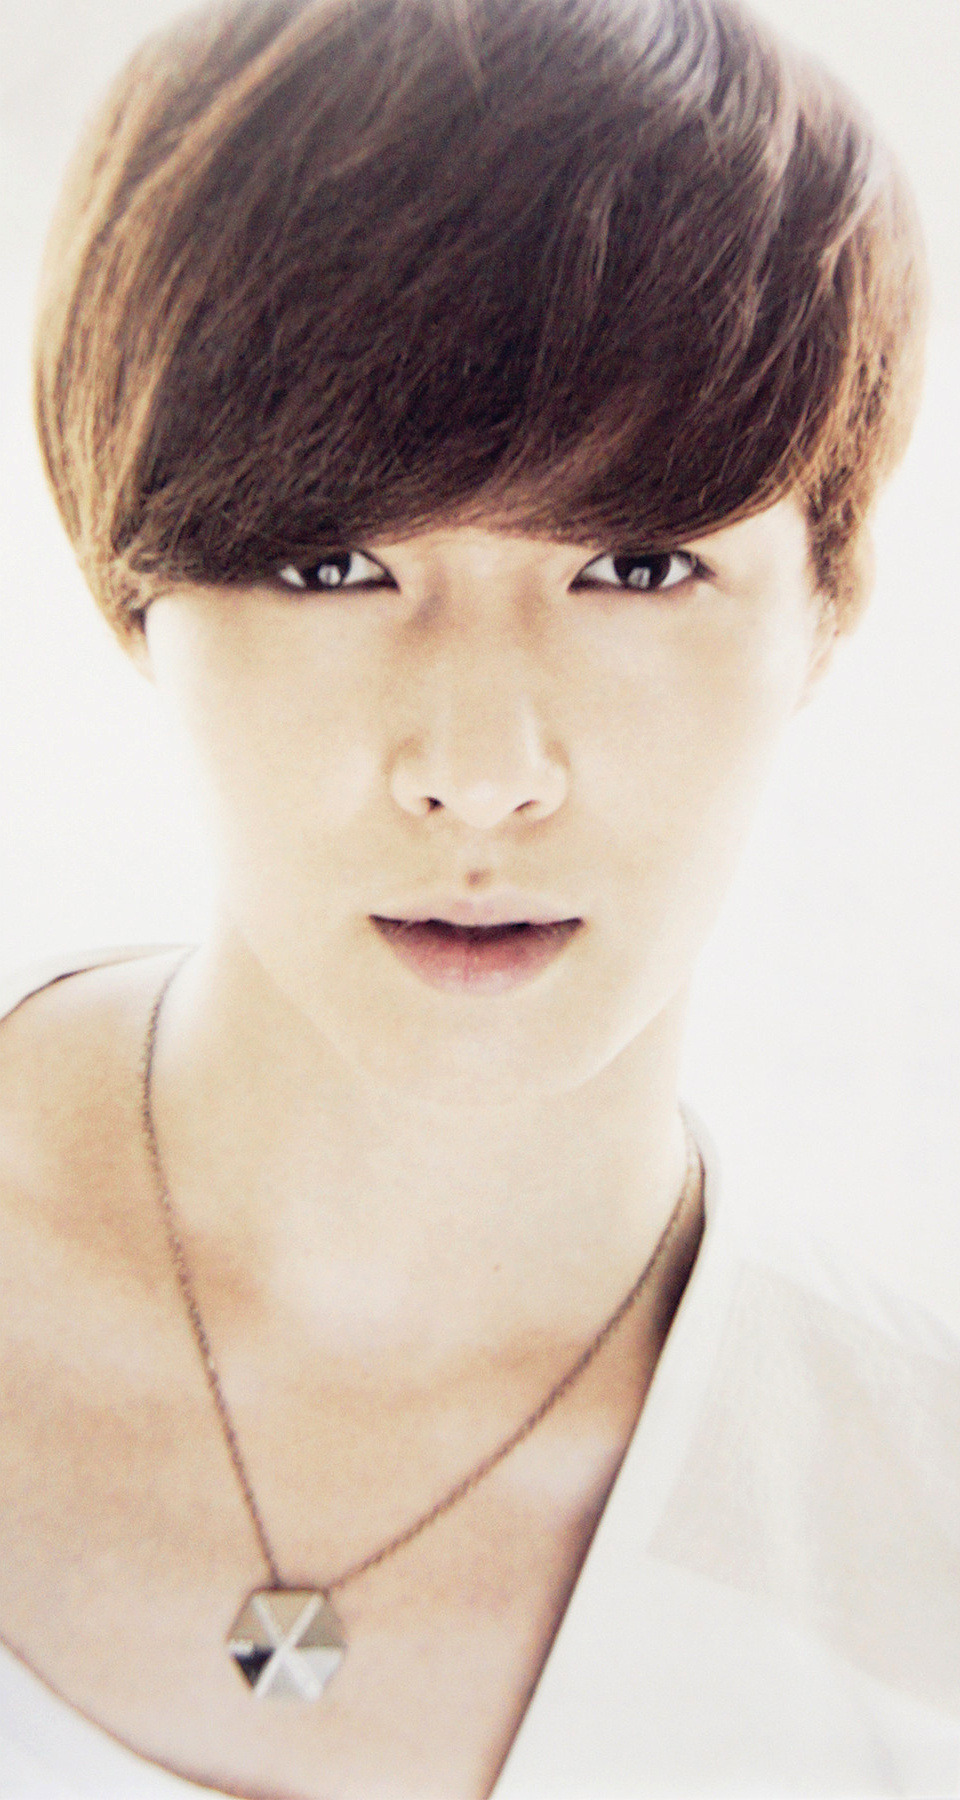 yixingindonesia:  [SCAN] LAY - MAGAZINE (1) cr: nytiffany891020